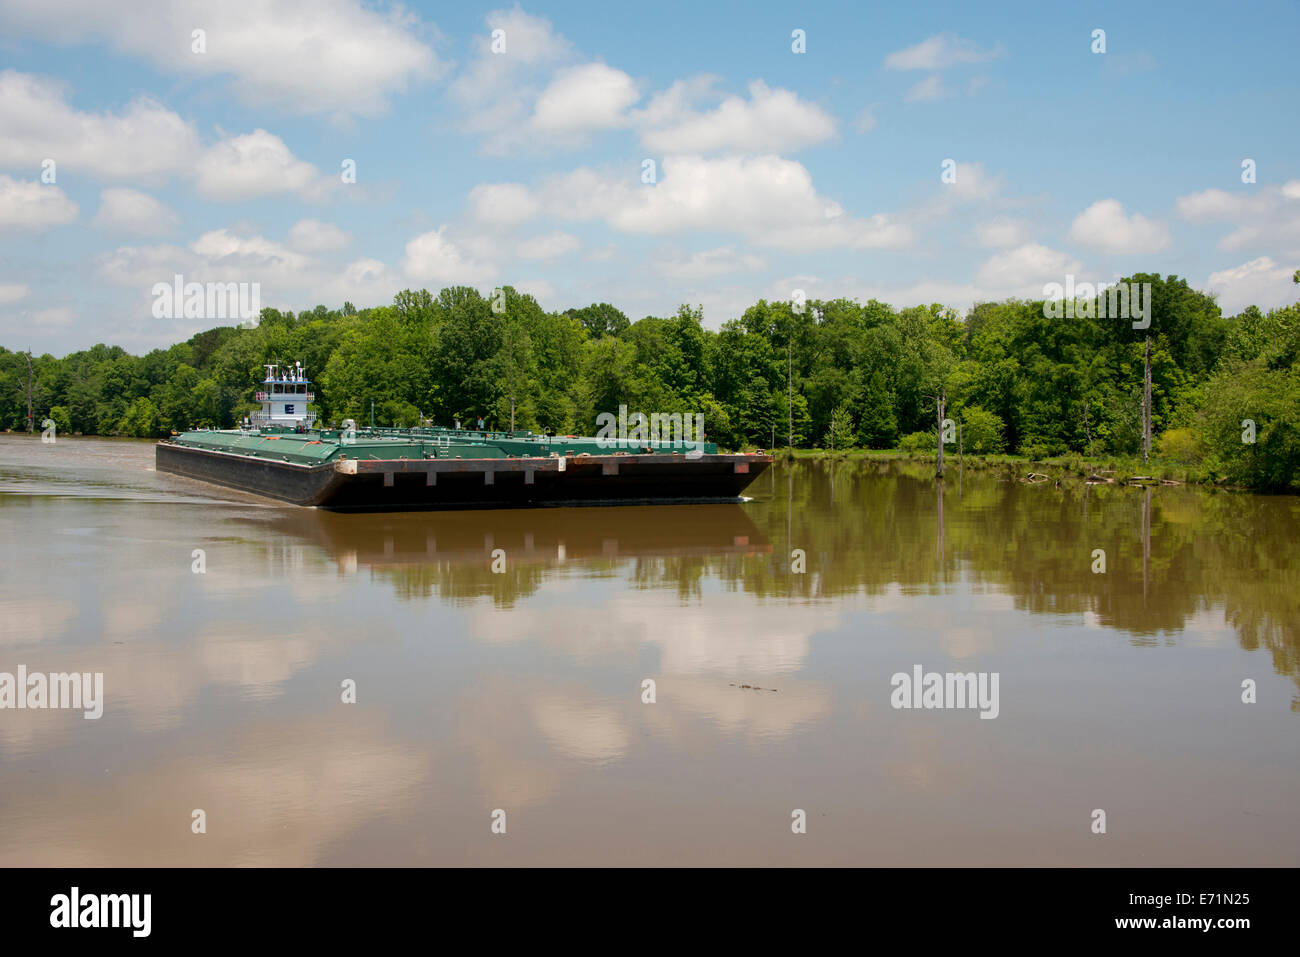 USA, Mississippi, Tennessee-Tombigbee Waterway. Tugboat pushing river barge. (Large format sizes available) - Stock Image